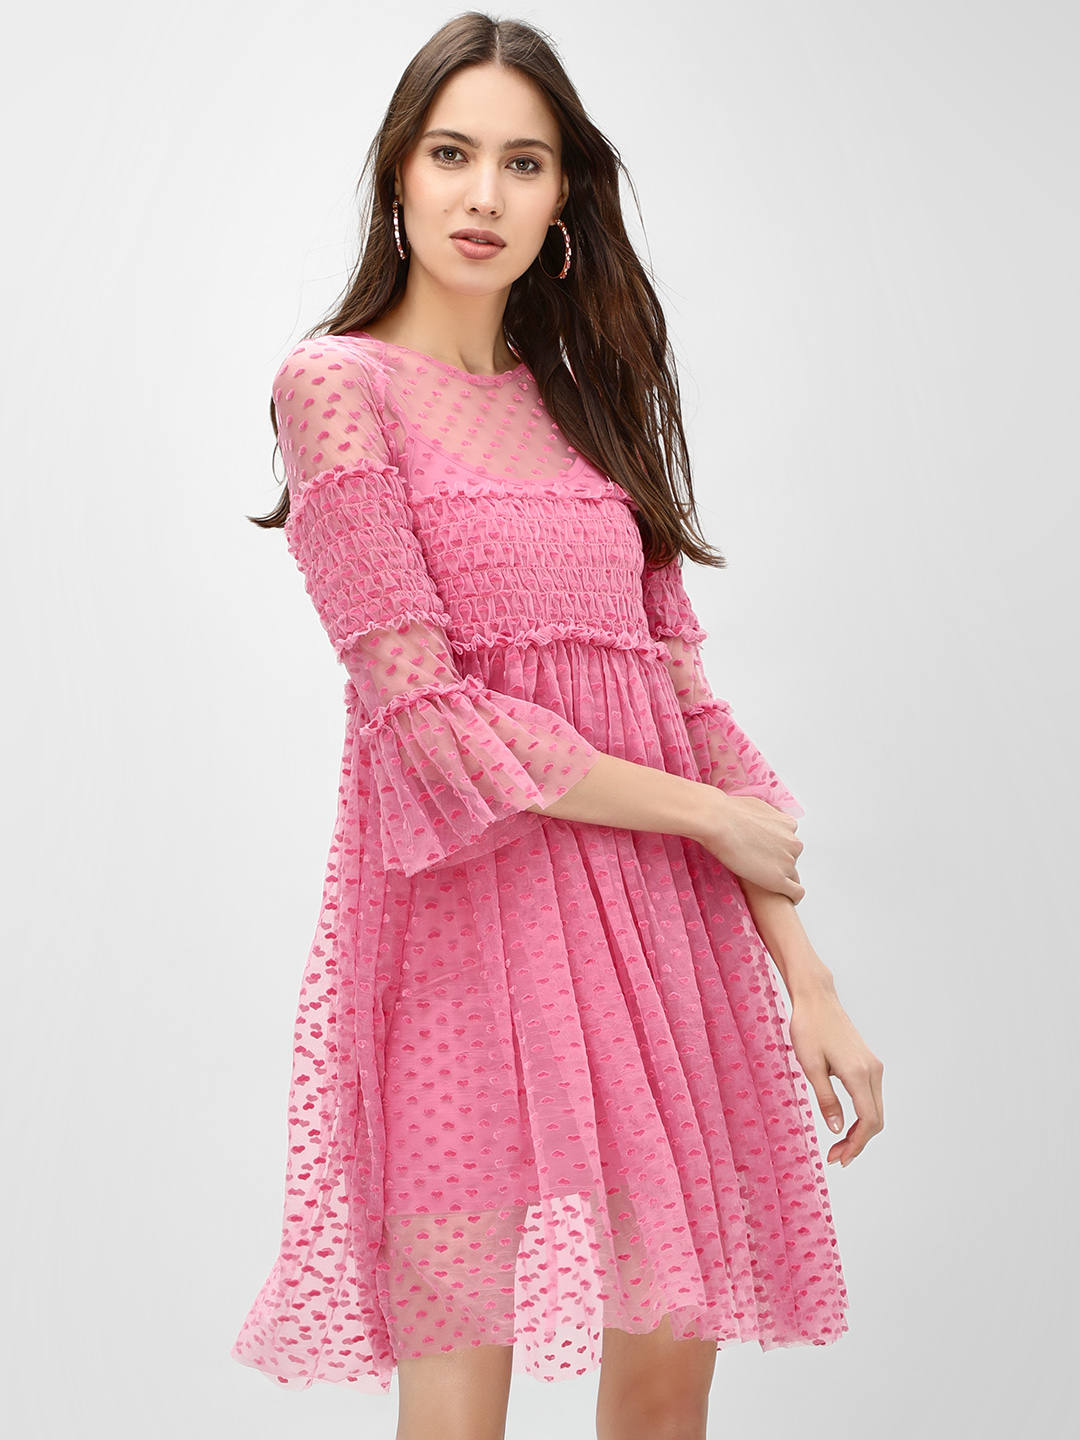 KOOVS Pink Heart Lace Skater Dress 1